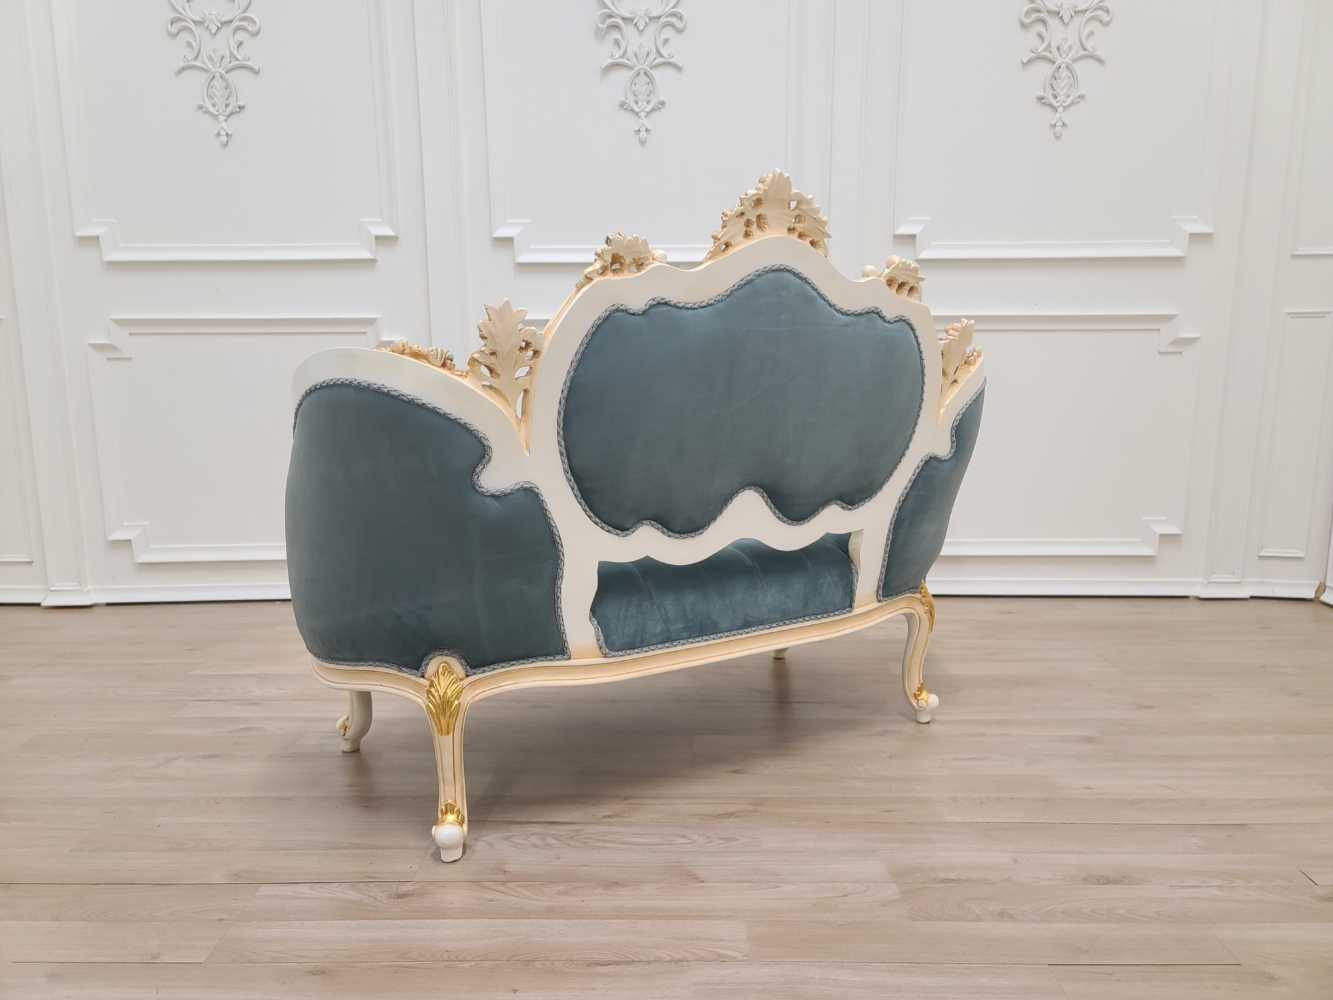 Made To Order / French Settee/ Ivory with Gold Leaf Accent/ Tufted Cerulean Blue Velvet Upholstered/Hand Carved Wooden Frame